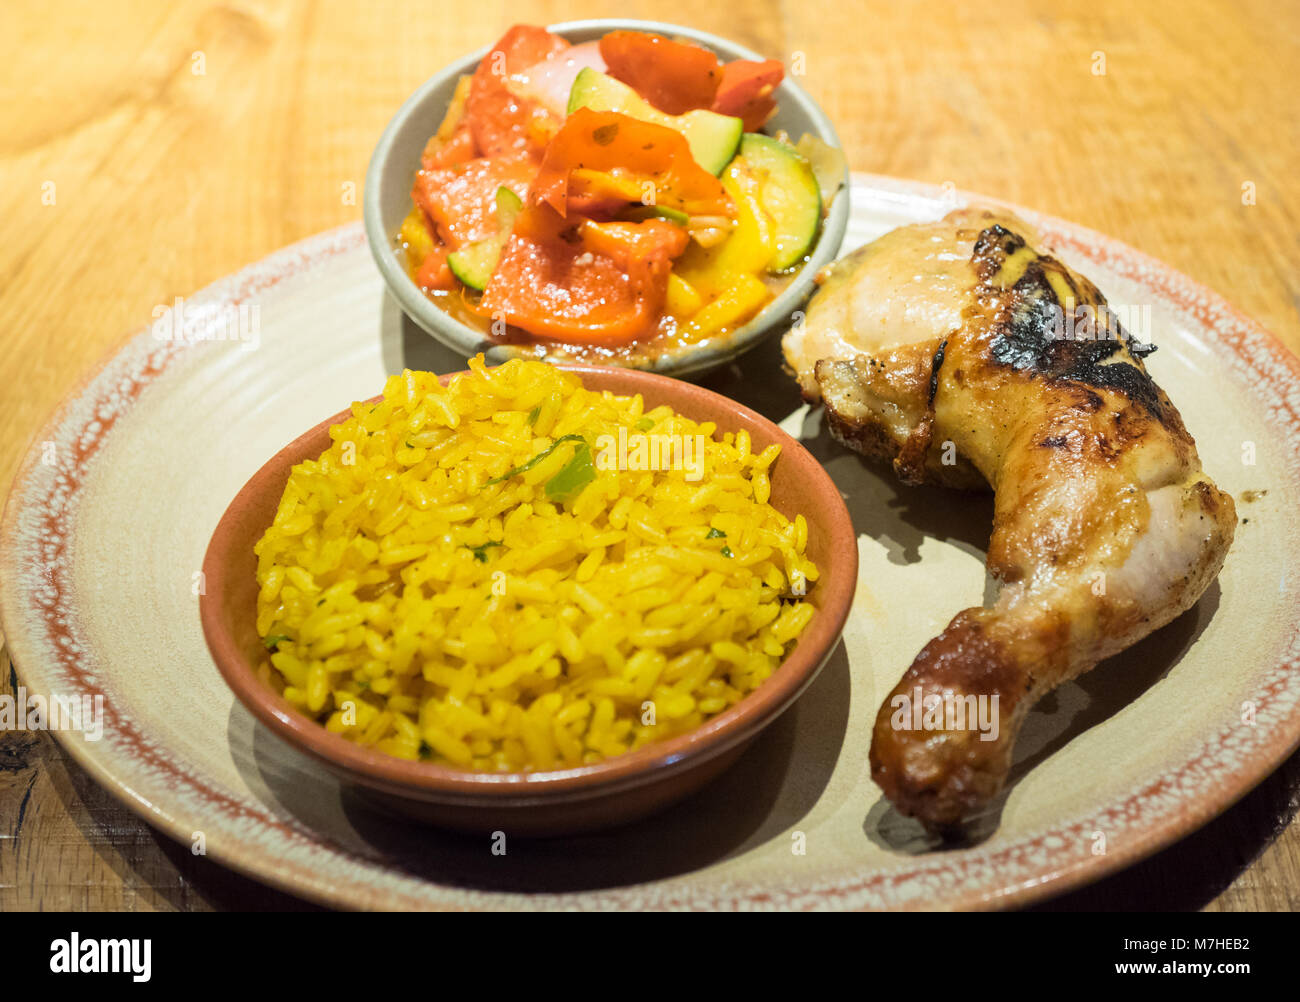 Peri-peri quarter chicken with sides of spiced rice and peri-peri vegetables from Nando's, a casual dining chain - Stock Image